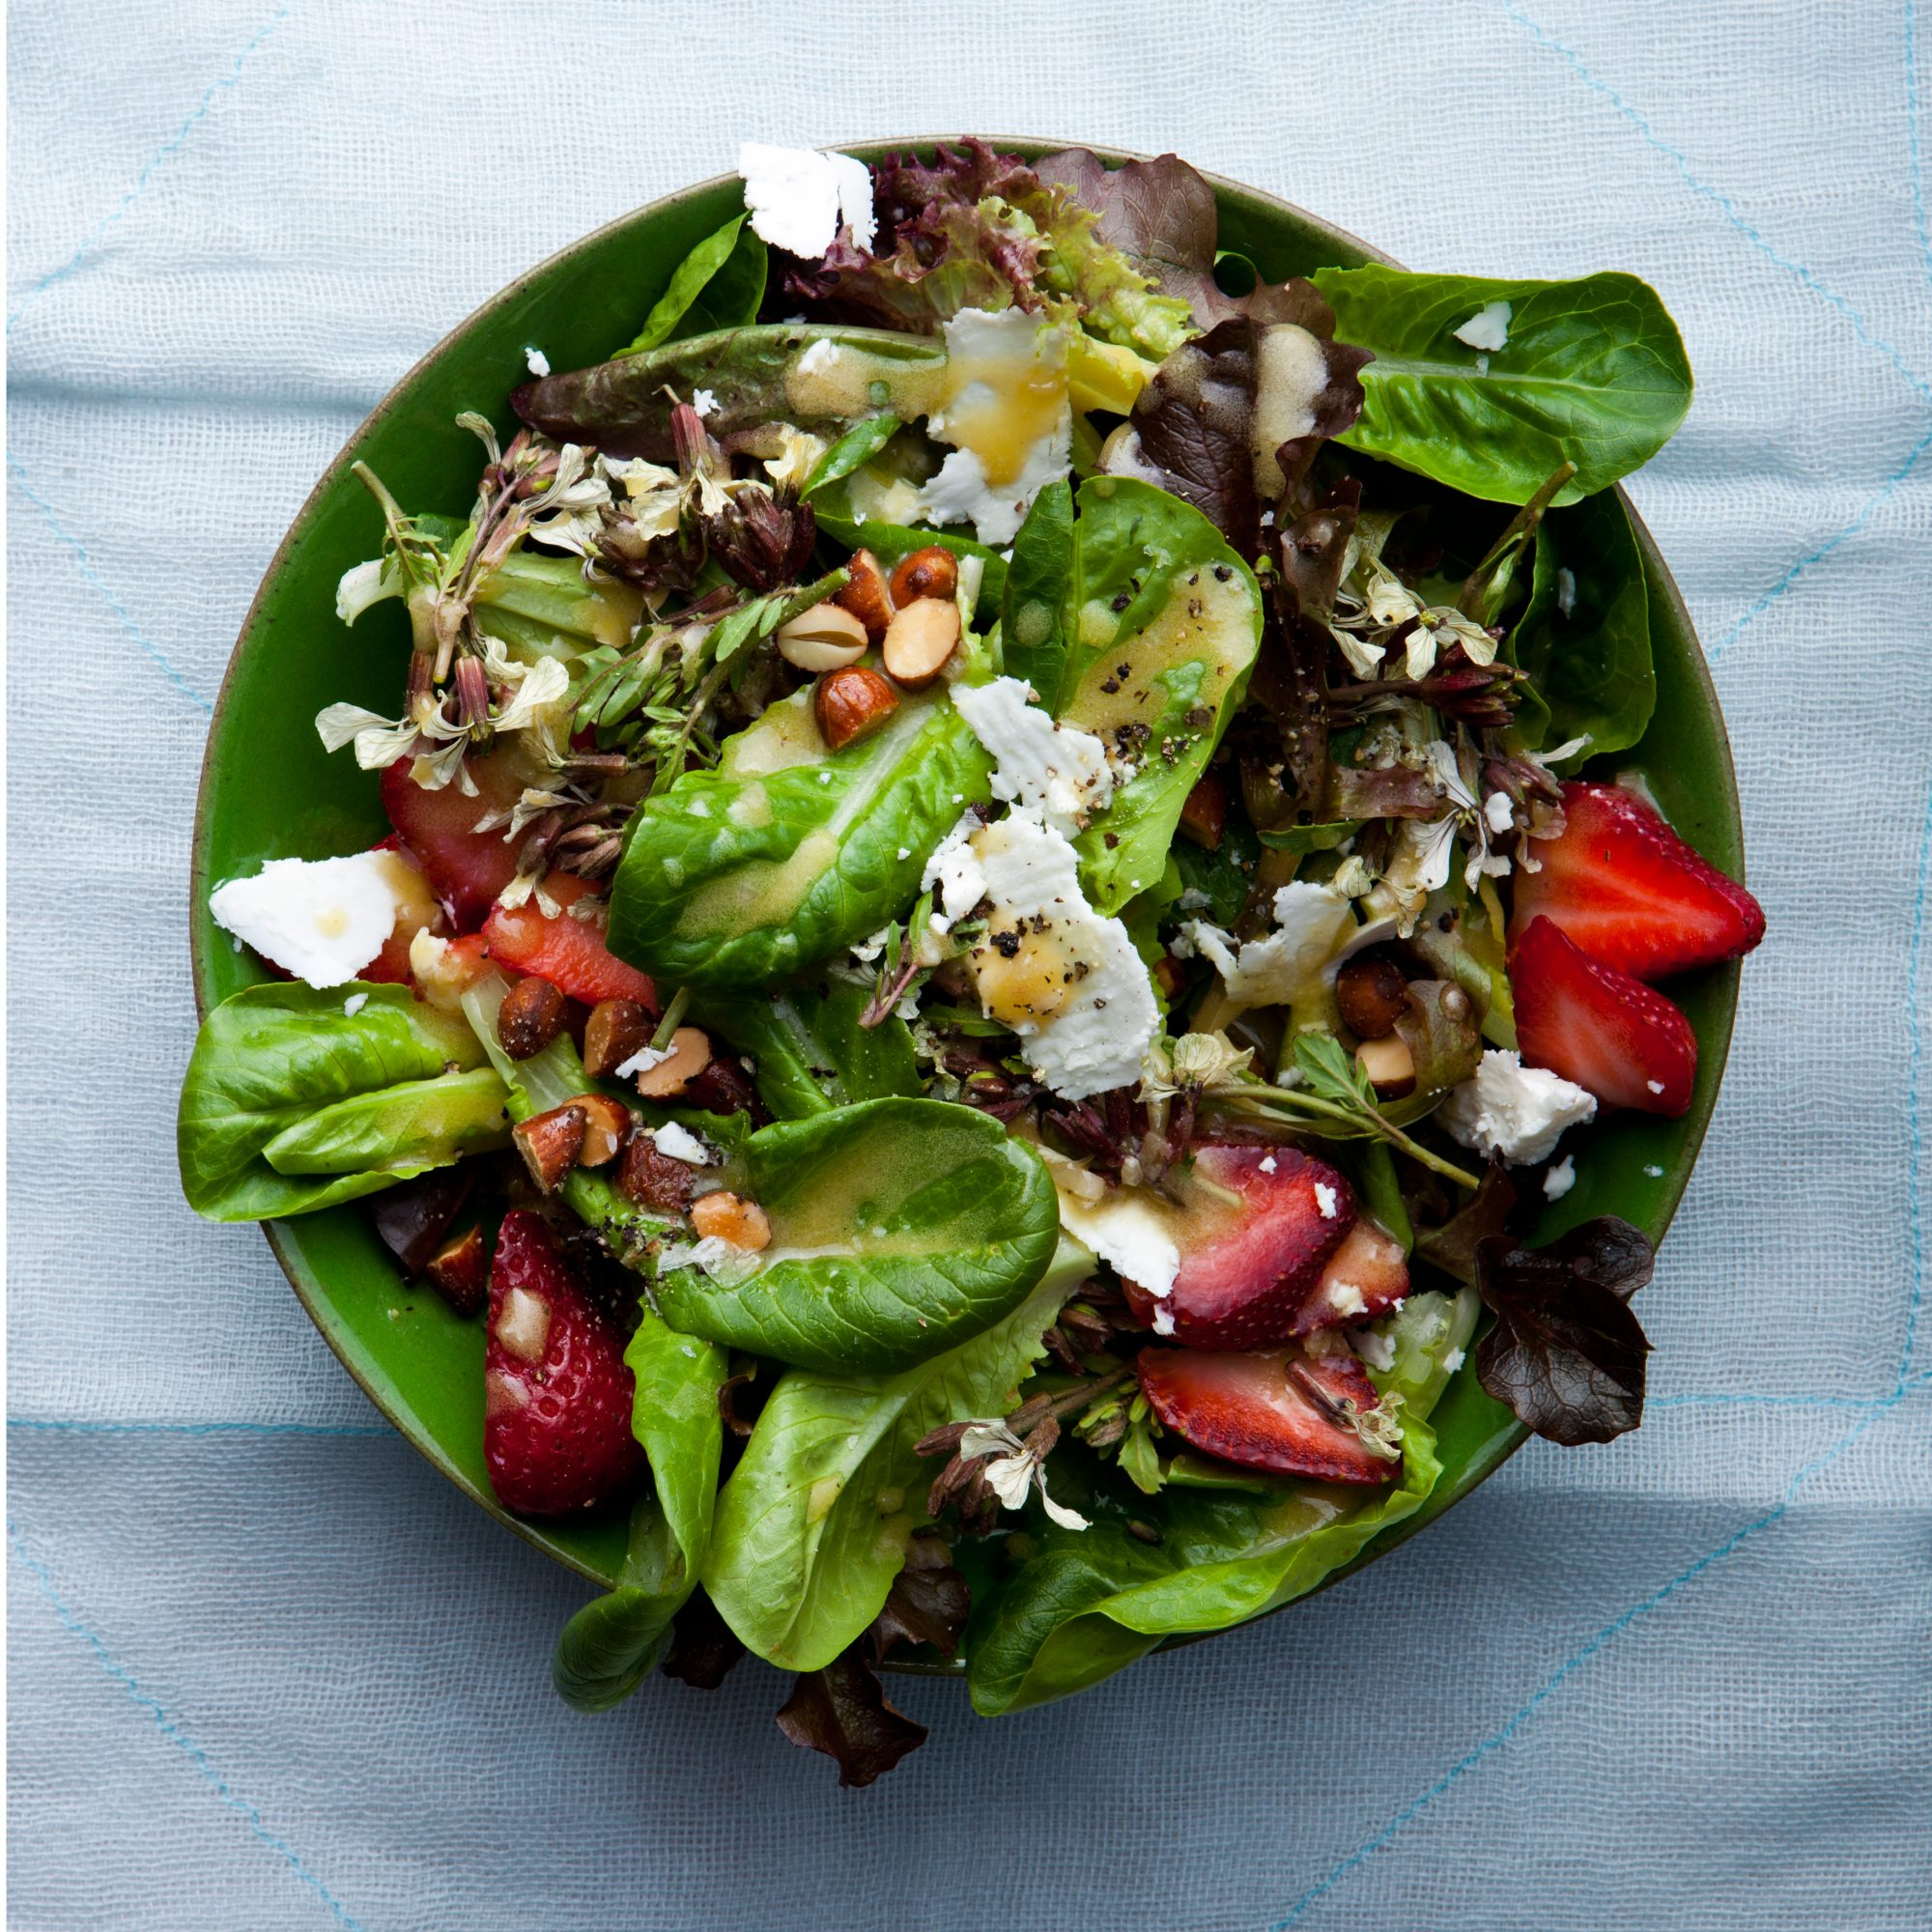 200x250-201206-r-baby-lettuces-with-feta-strawberries-and-almonds.jpg